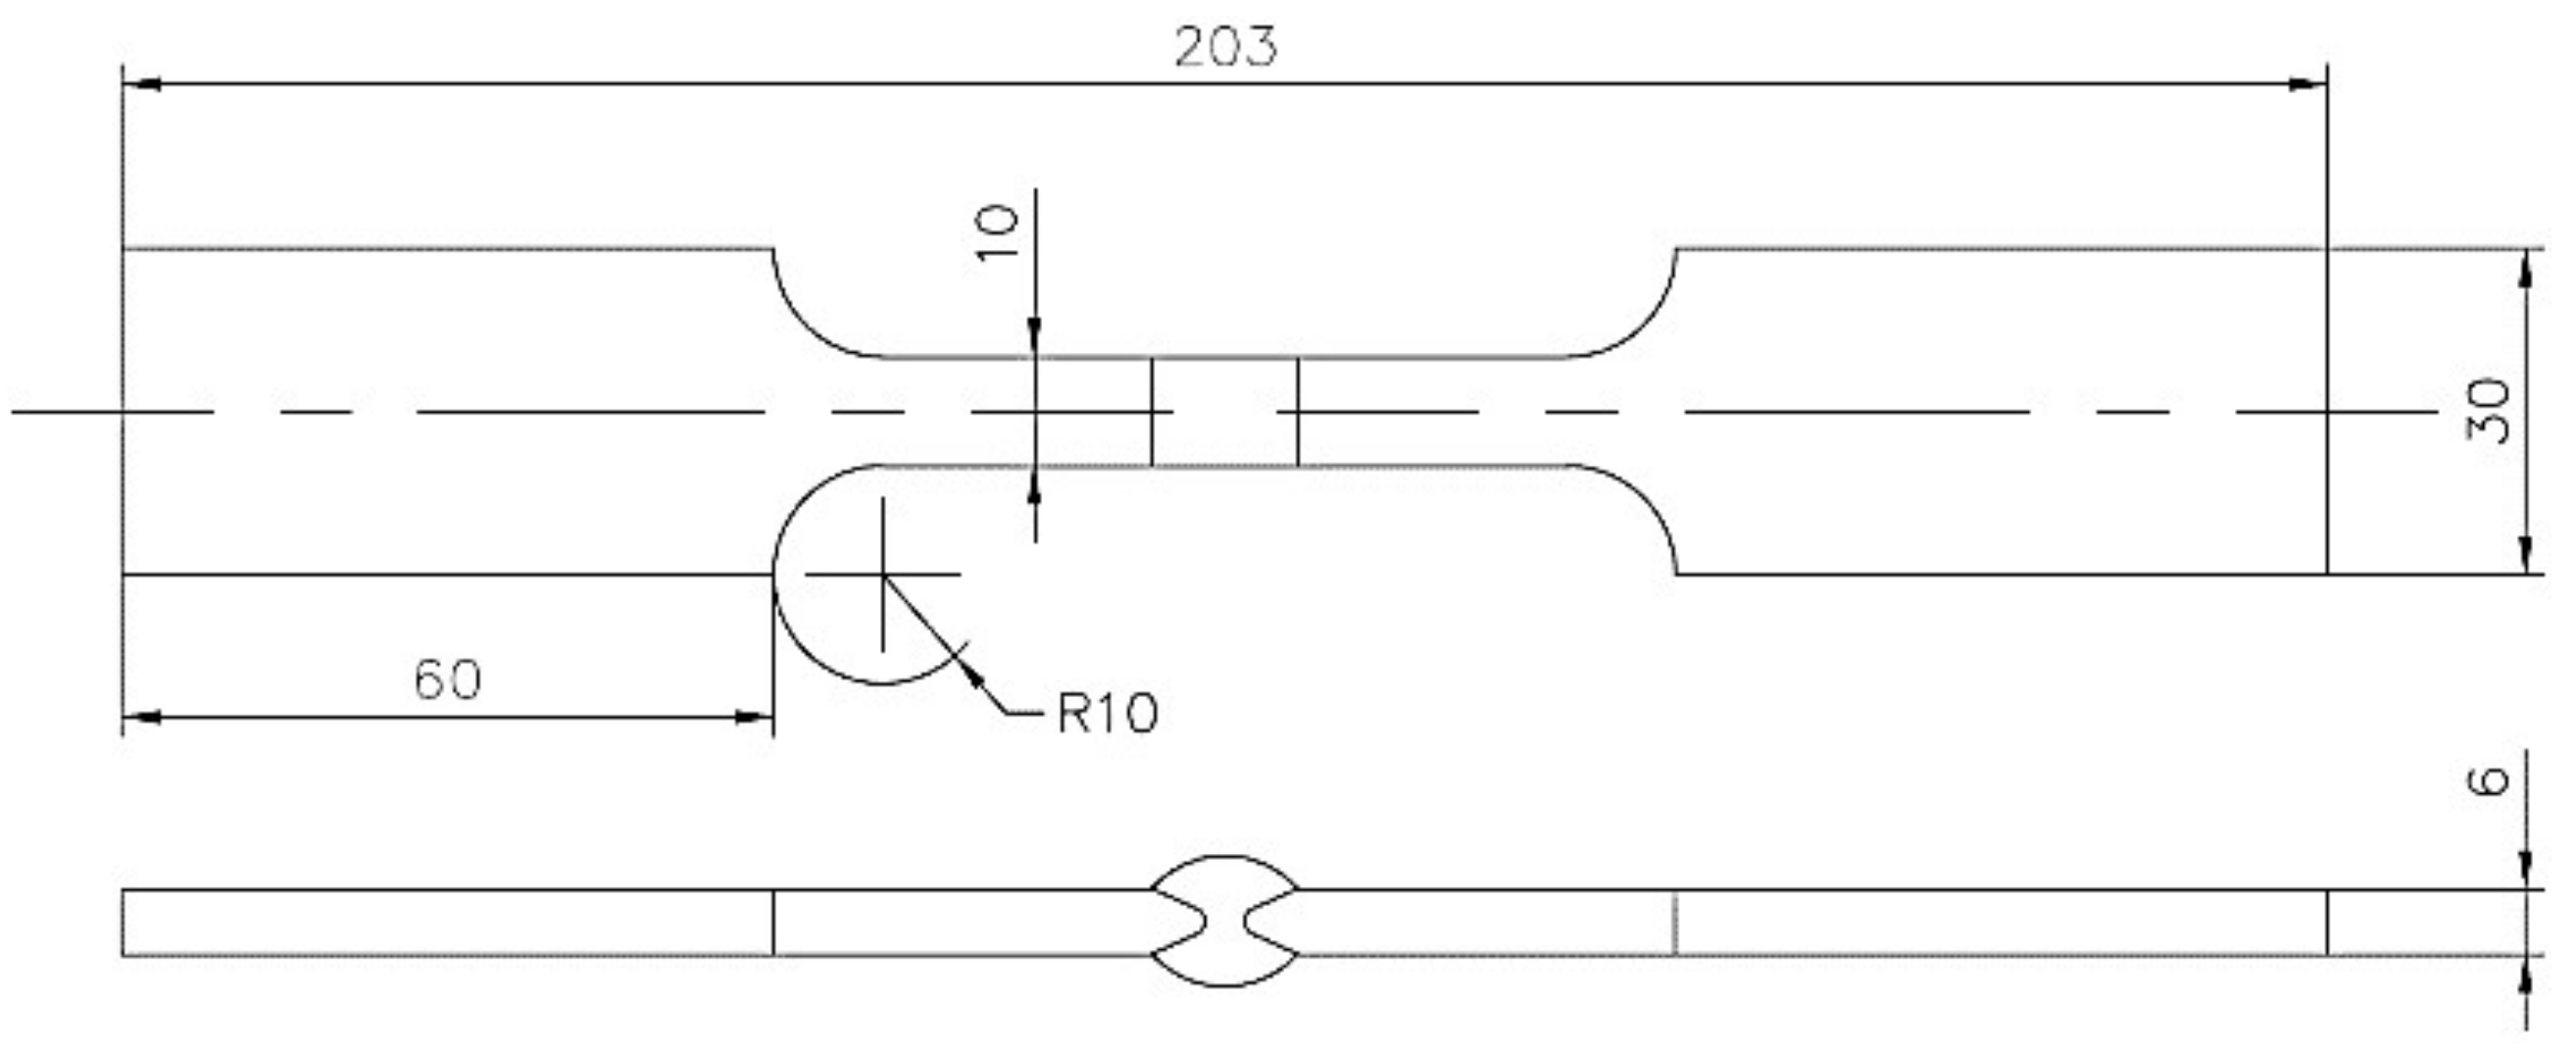 Materials Free Full Text The Effect Of Weld Reinforcement And Diagram Welding No